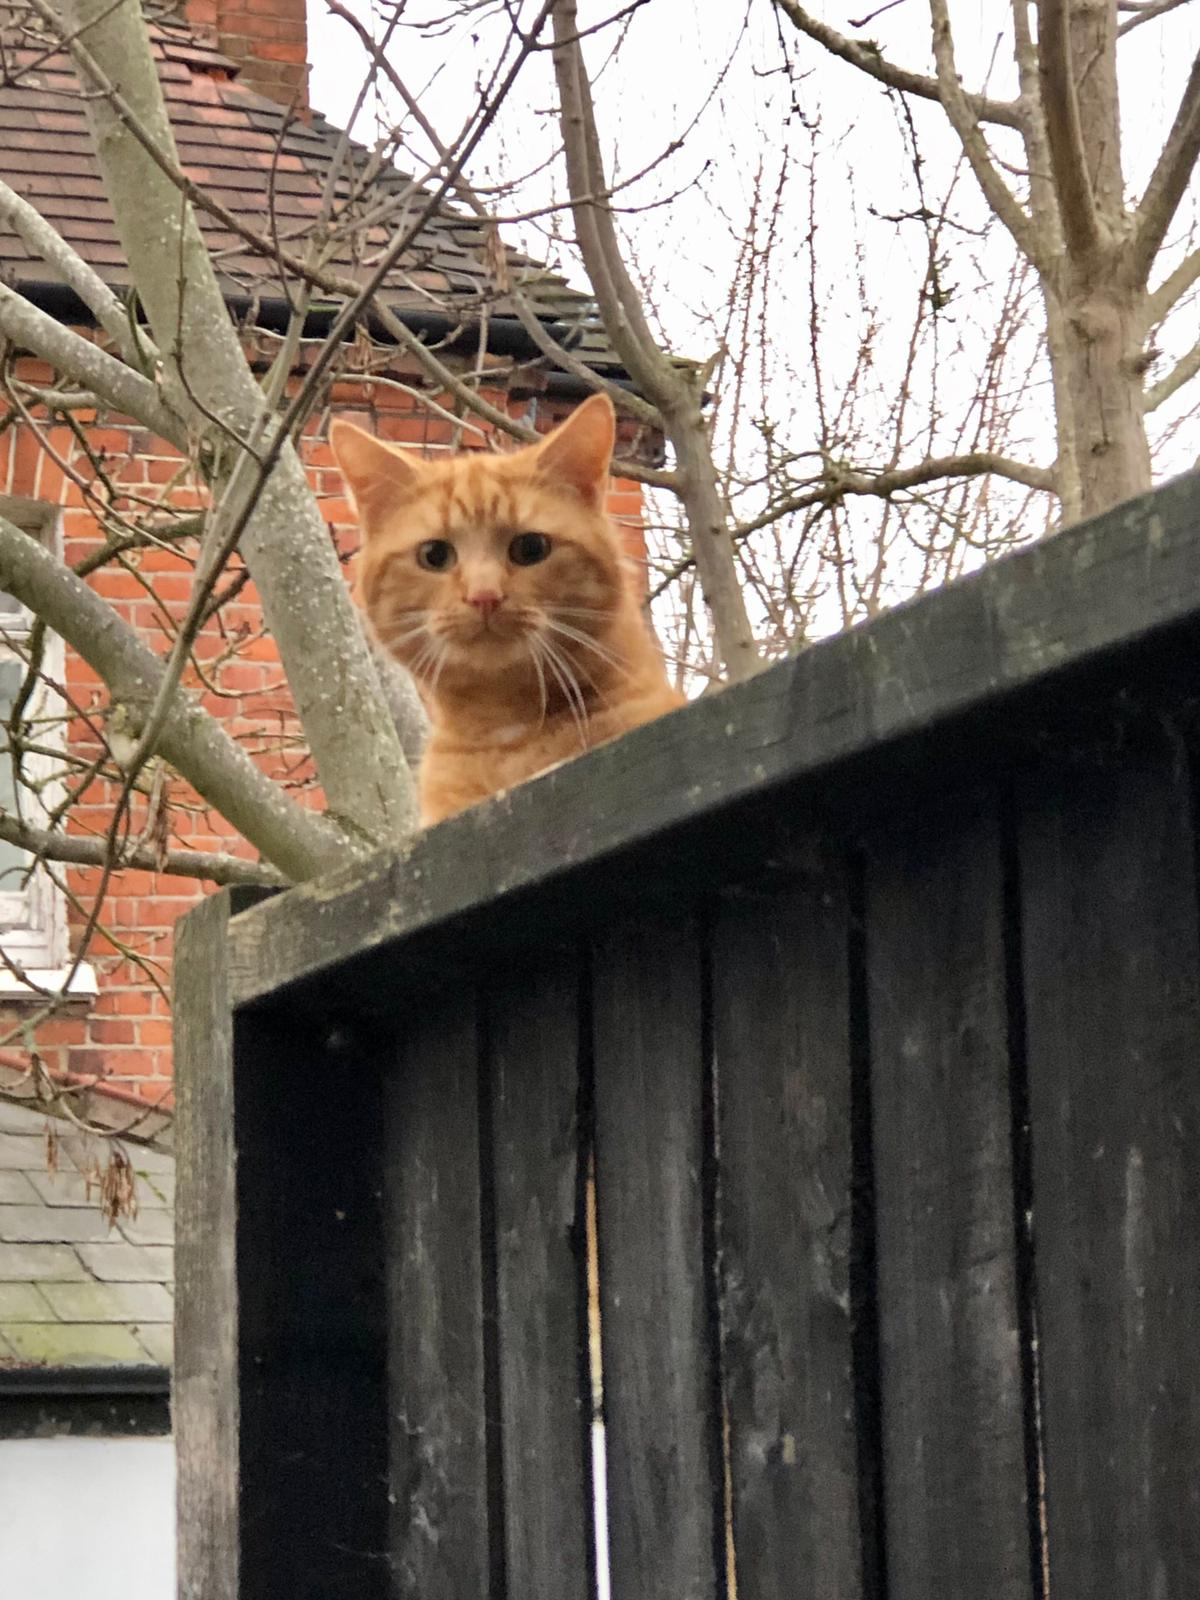 Is anyone missing a ginger cat?